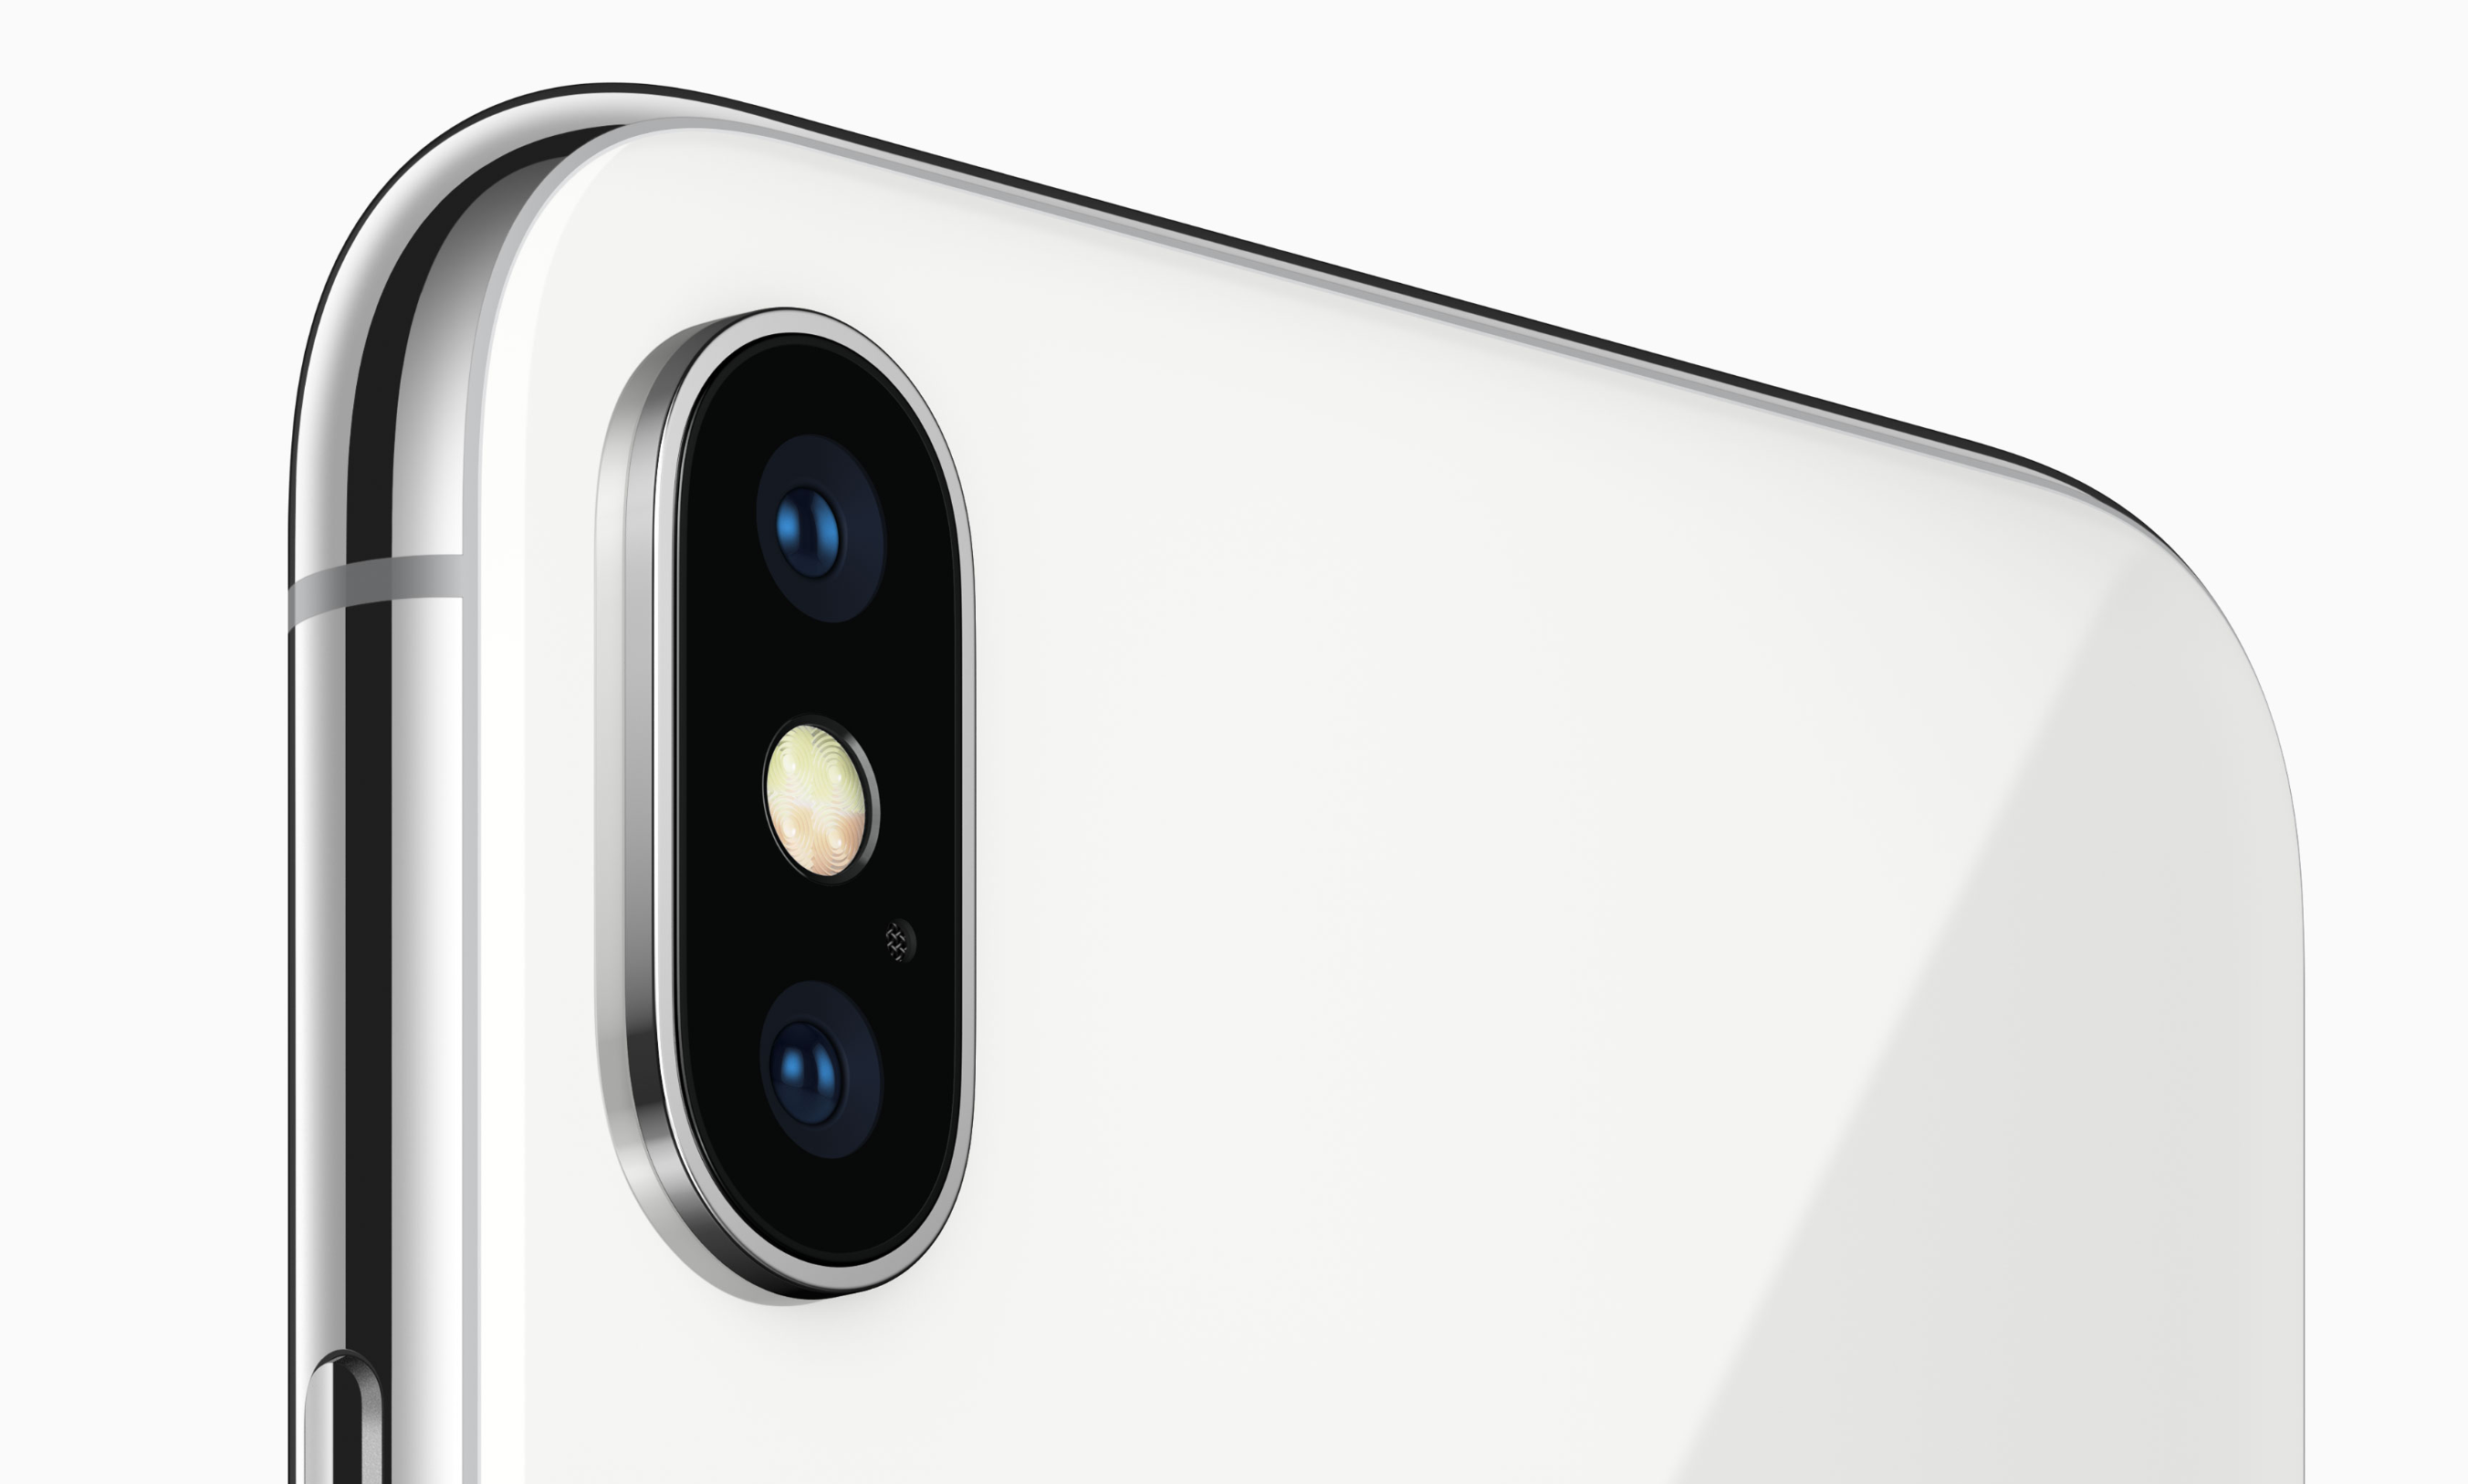 Apple working on budget iPhone 9 Plus powered by A13 Bionic chipset, reveals iOS 14 code